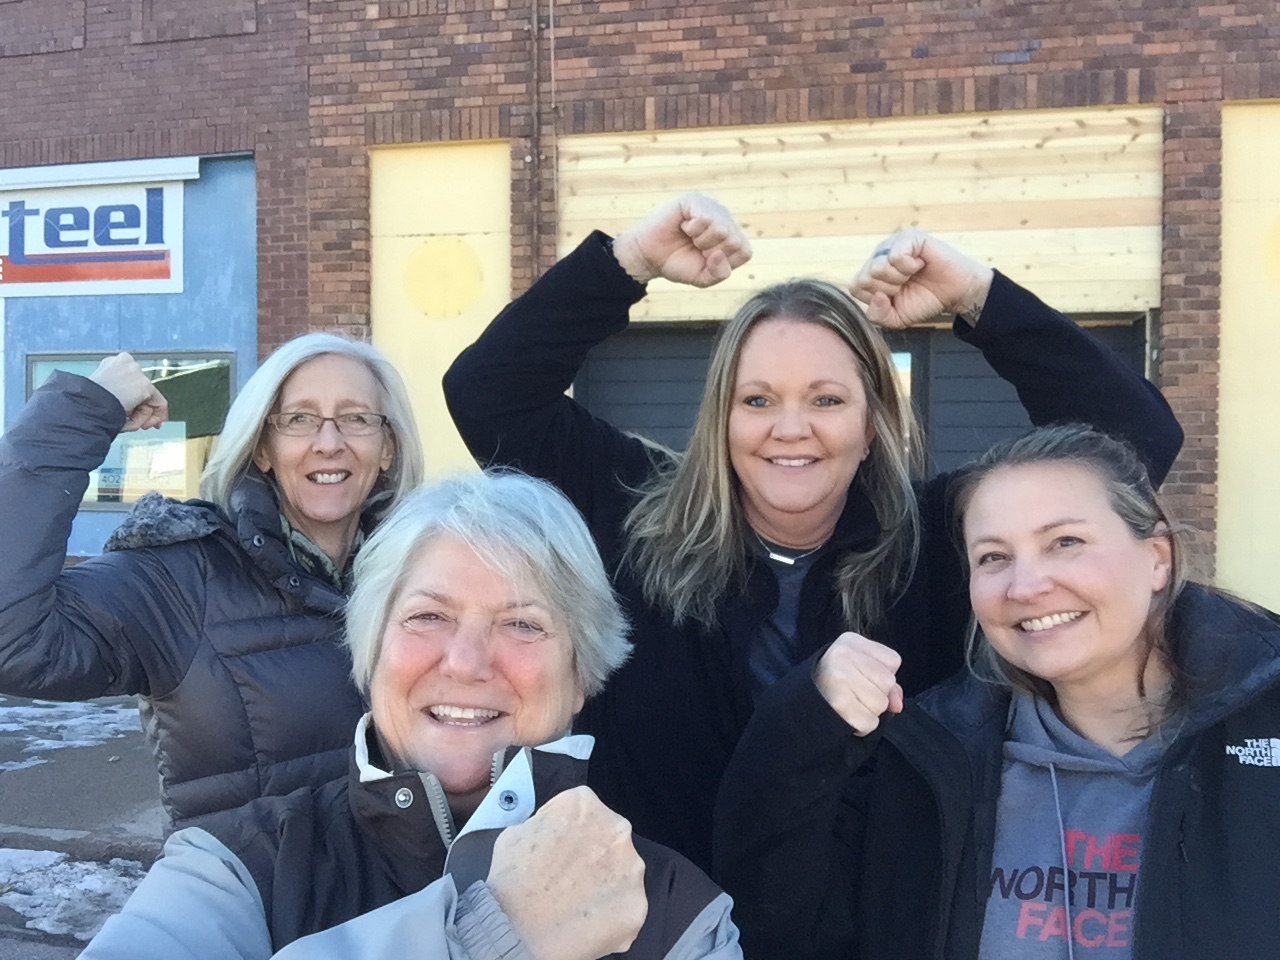 """Ready to """"get fit"""" are Kathy Hausmann, Listen and Learn Club member; Sonya Jensen, Post 36 Fitness board member; Kathy Divine, Listen and Learn Club Member; and Amy Bailey, Post 36 Fitness board member."""